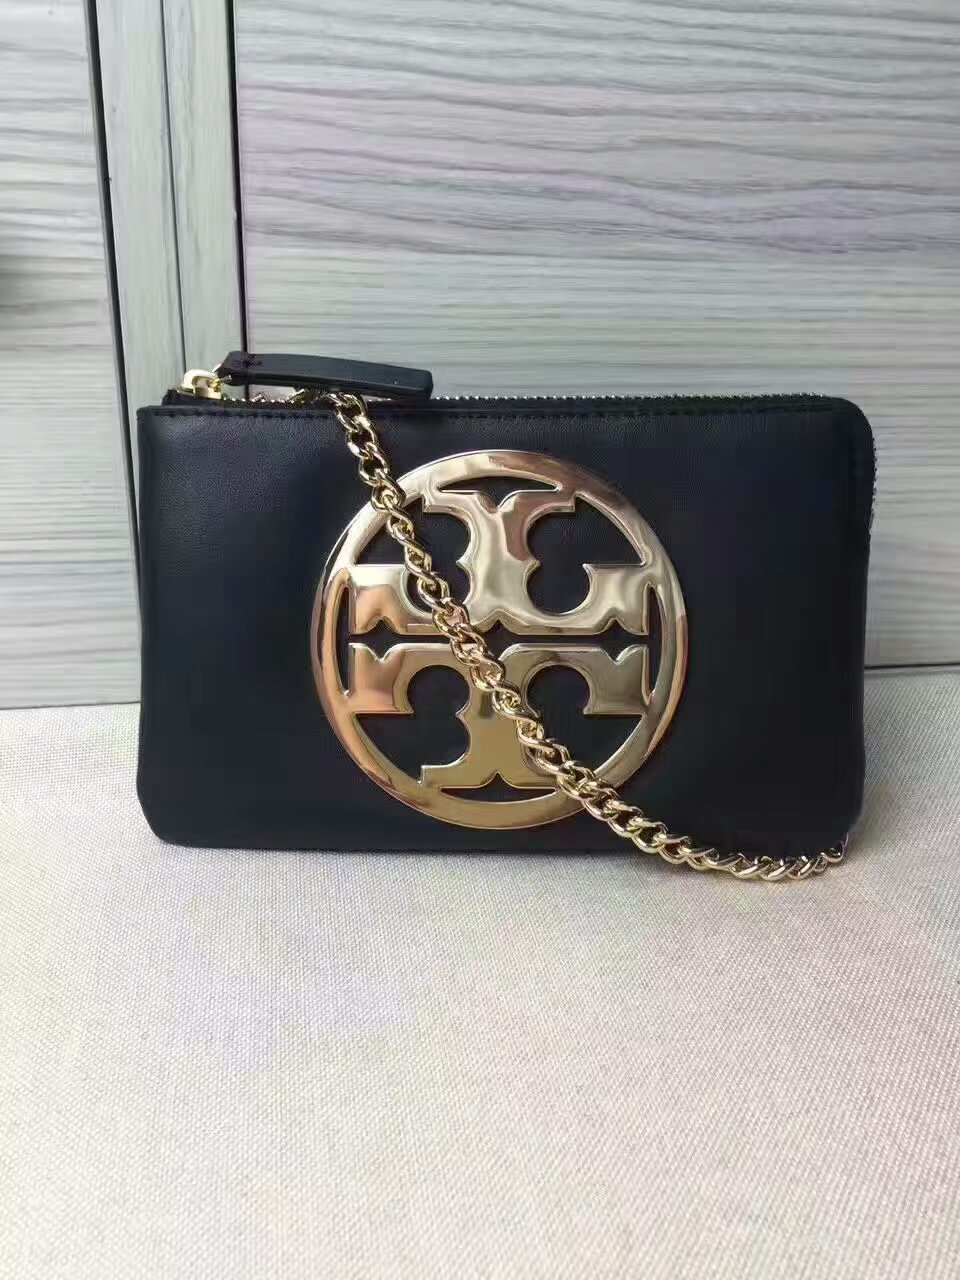 2d880962c258 Tory Burch Charlie Mini Chain Bag and 50 similar items.  Mmexport1502024663912. Mmexport1502024663912